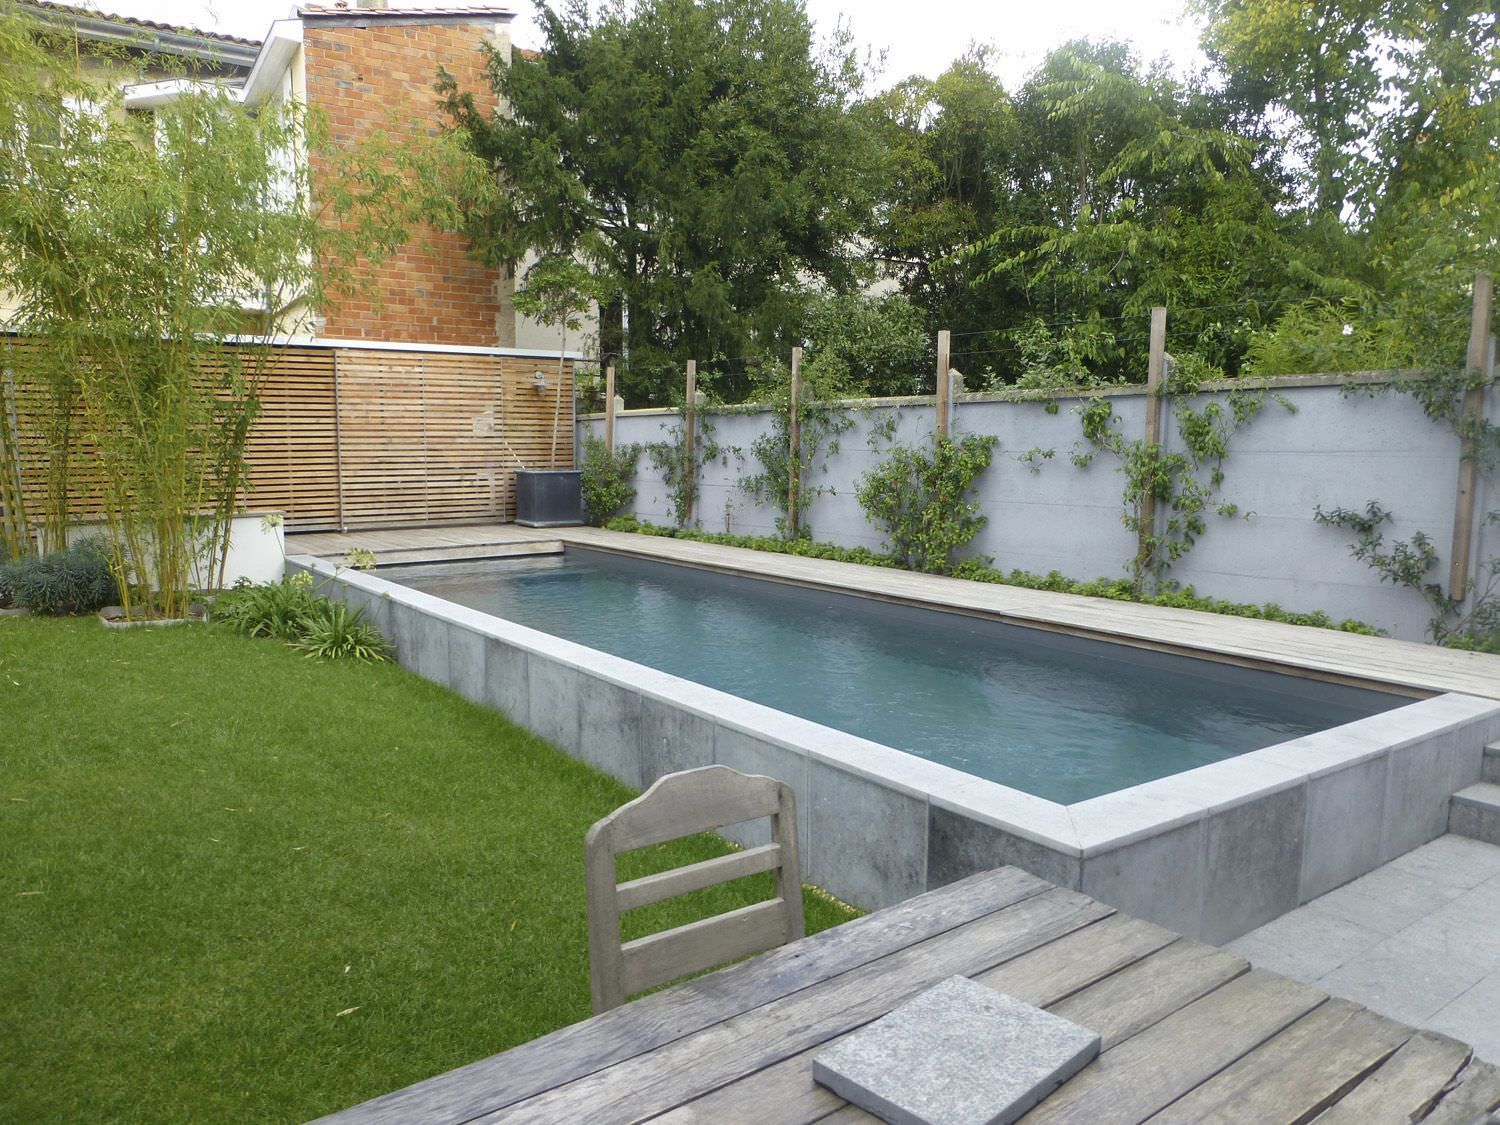 Piscine semi enterr e en b ton plouf pinterest for Bassin piscine beton